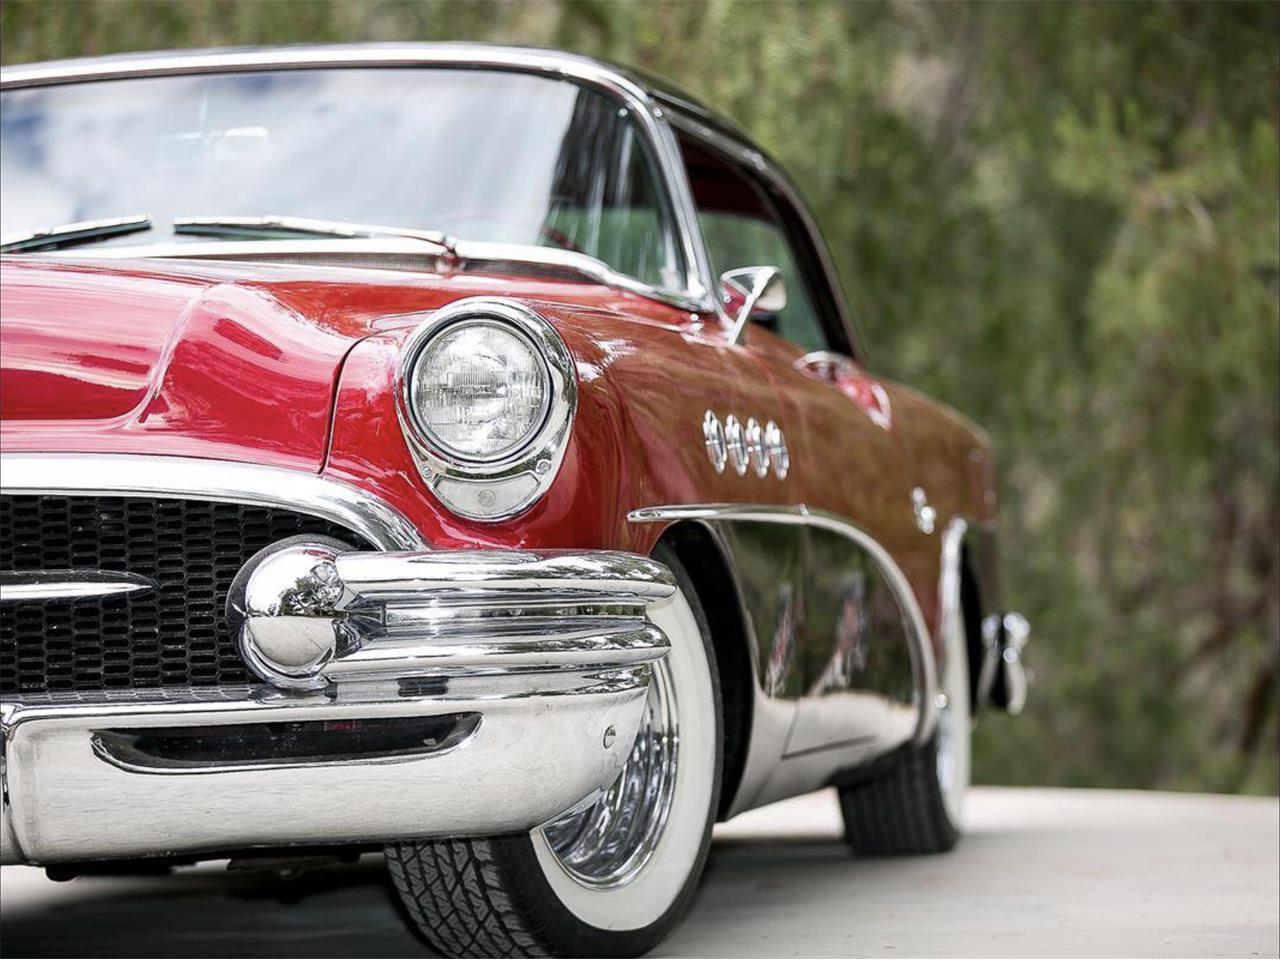 Large Picture of '55 Buick Super located in Castle Rock Colorado - $49,500.00 Offered by a Private Seller - QU0U